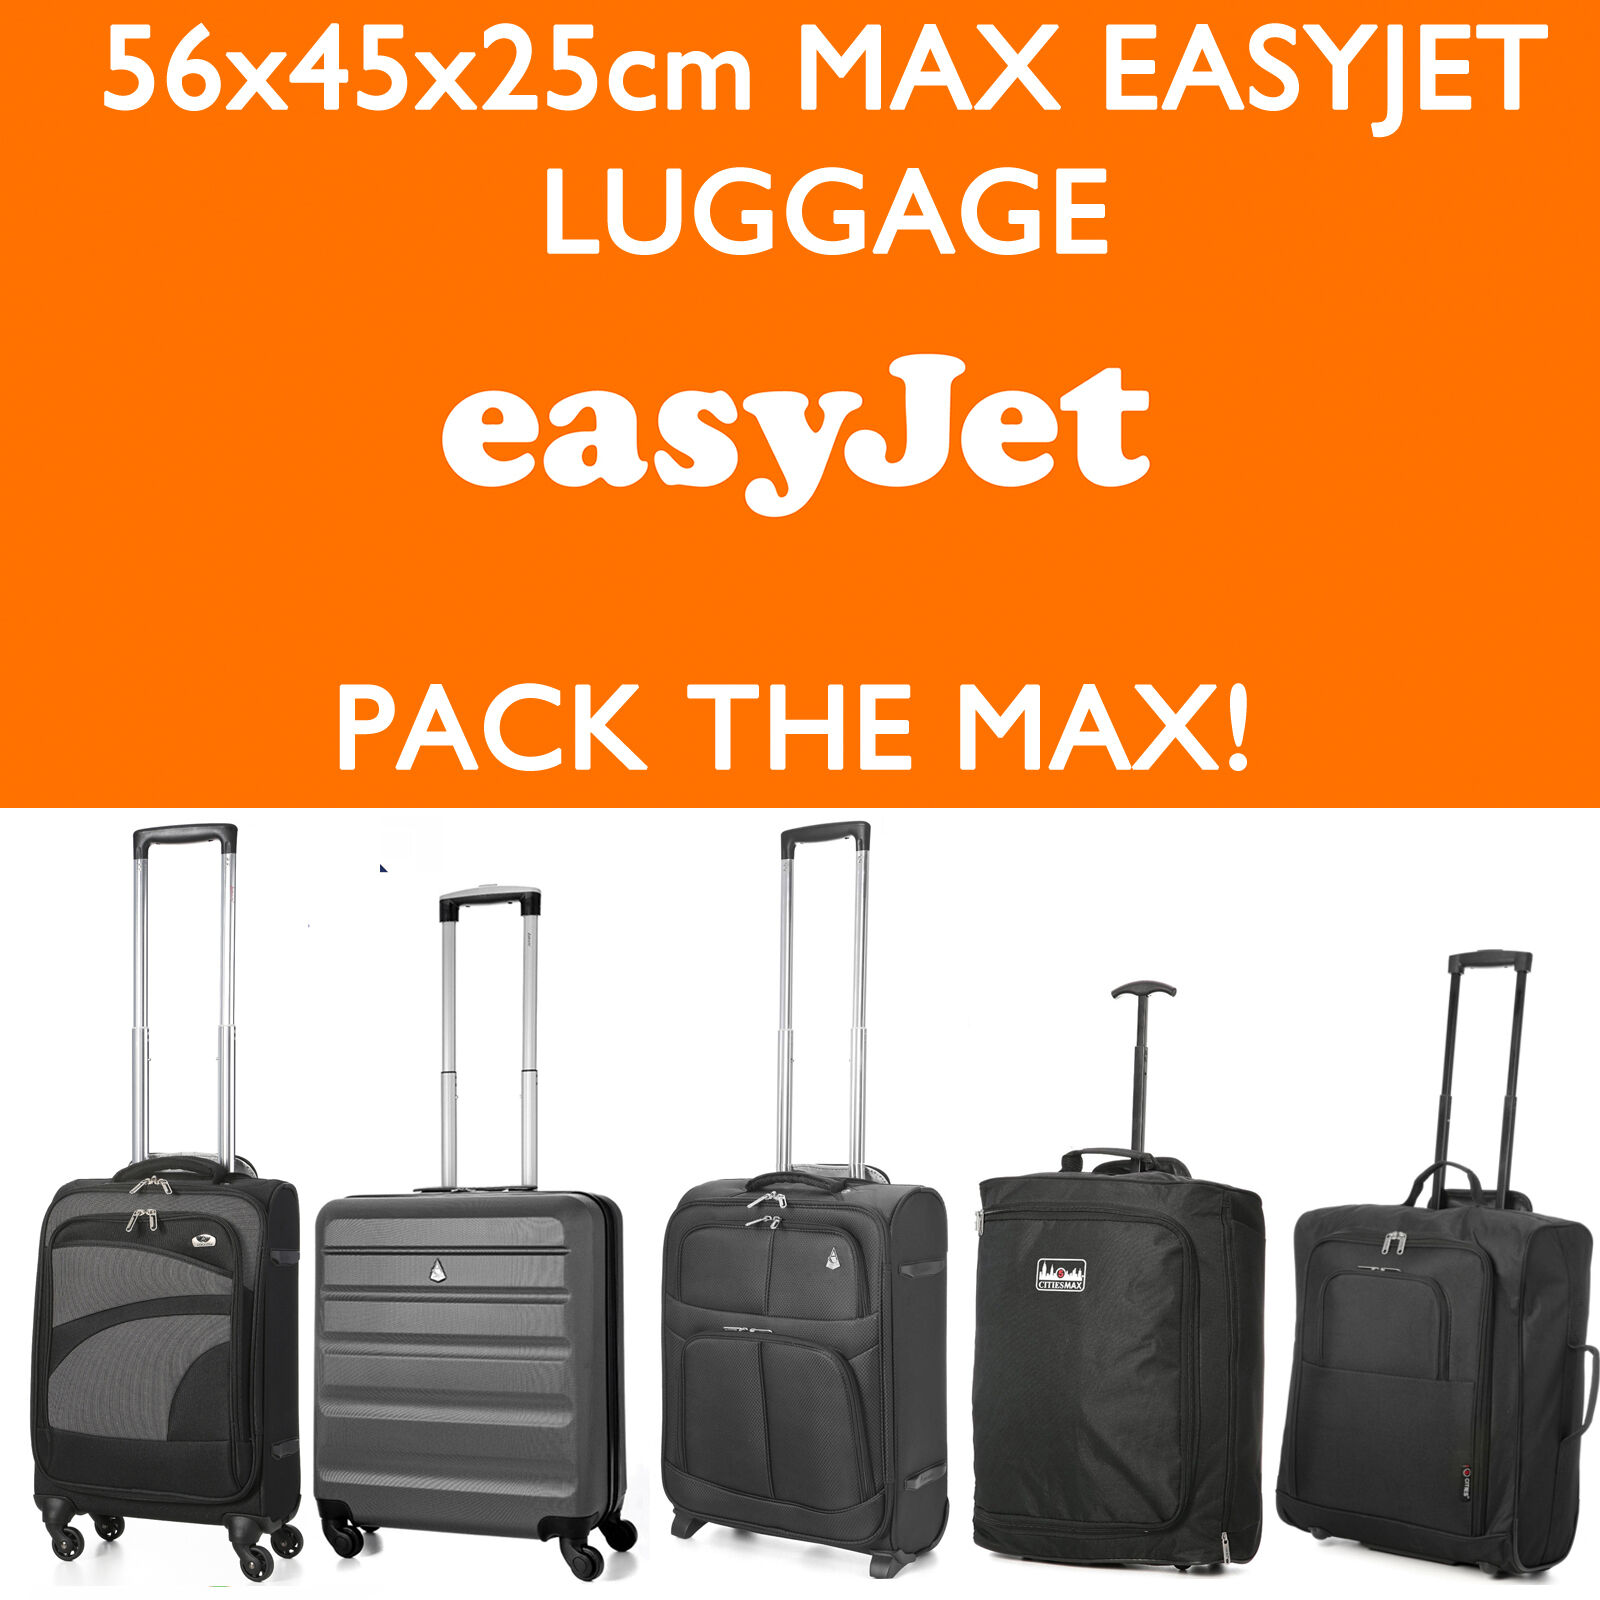 Easyjet 56x45x25cm Maximum Allowance Size Carry On Hand Cabin Luggage Trolley Bags Suitcases